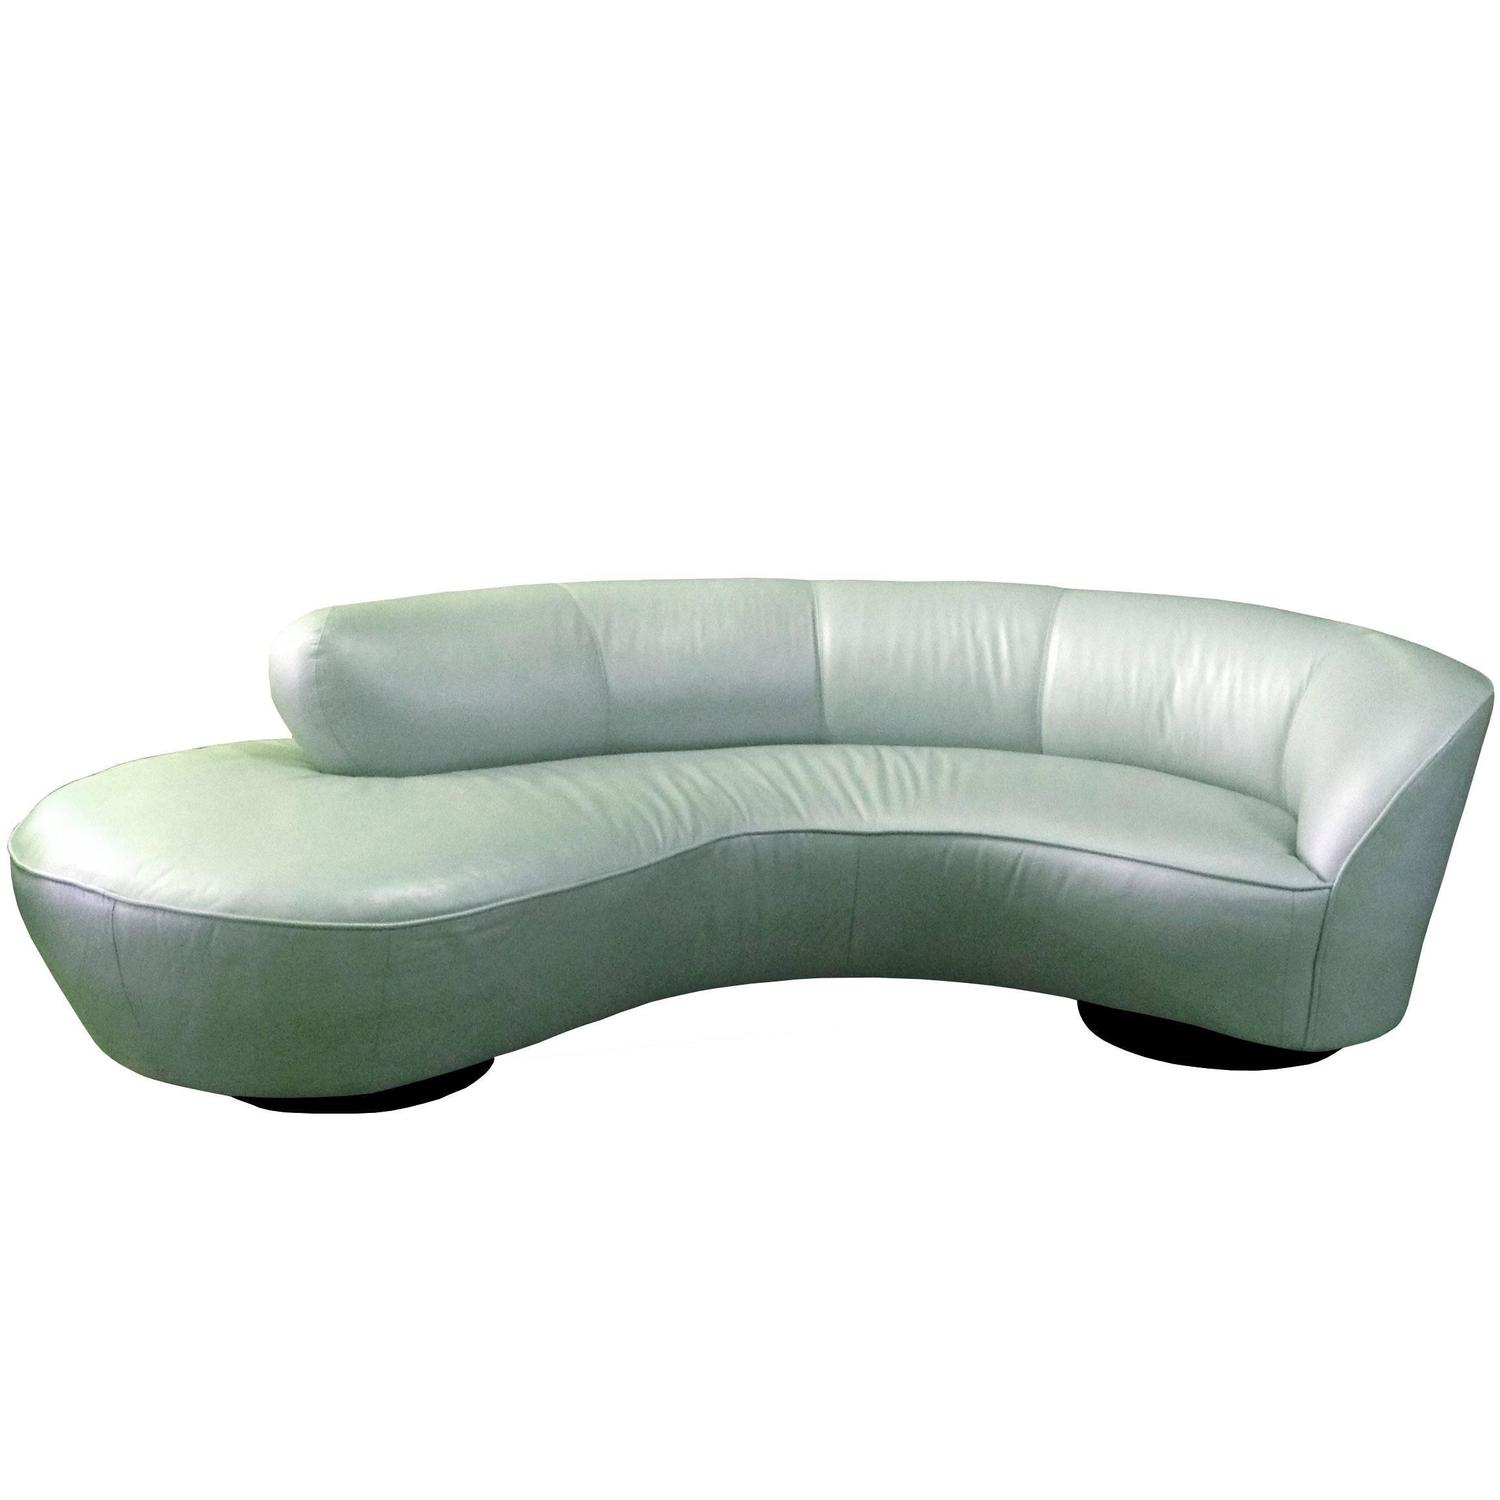 Vladimir Kagan Serpentine Sofa And Ottoman Upholstered In Edelman Leather For At 1stdibs